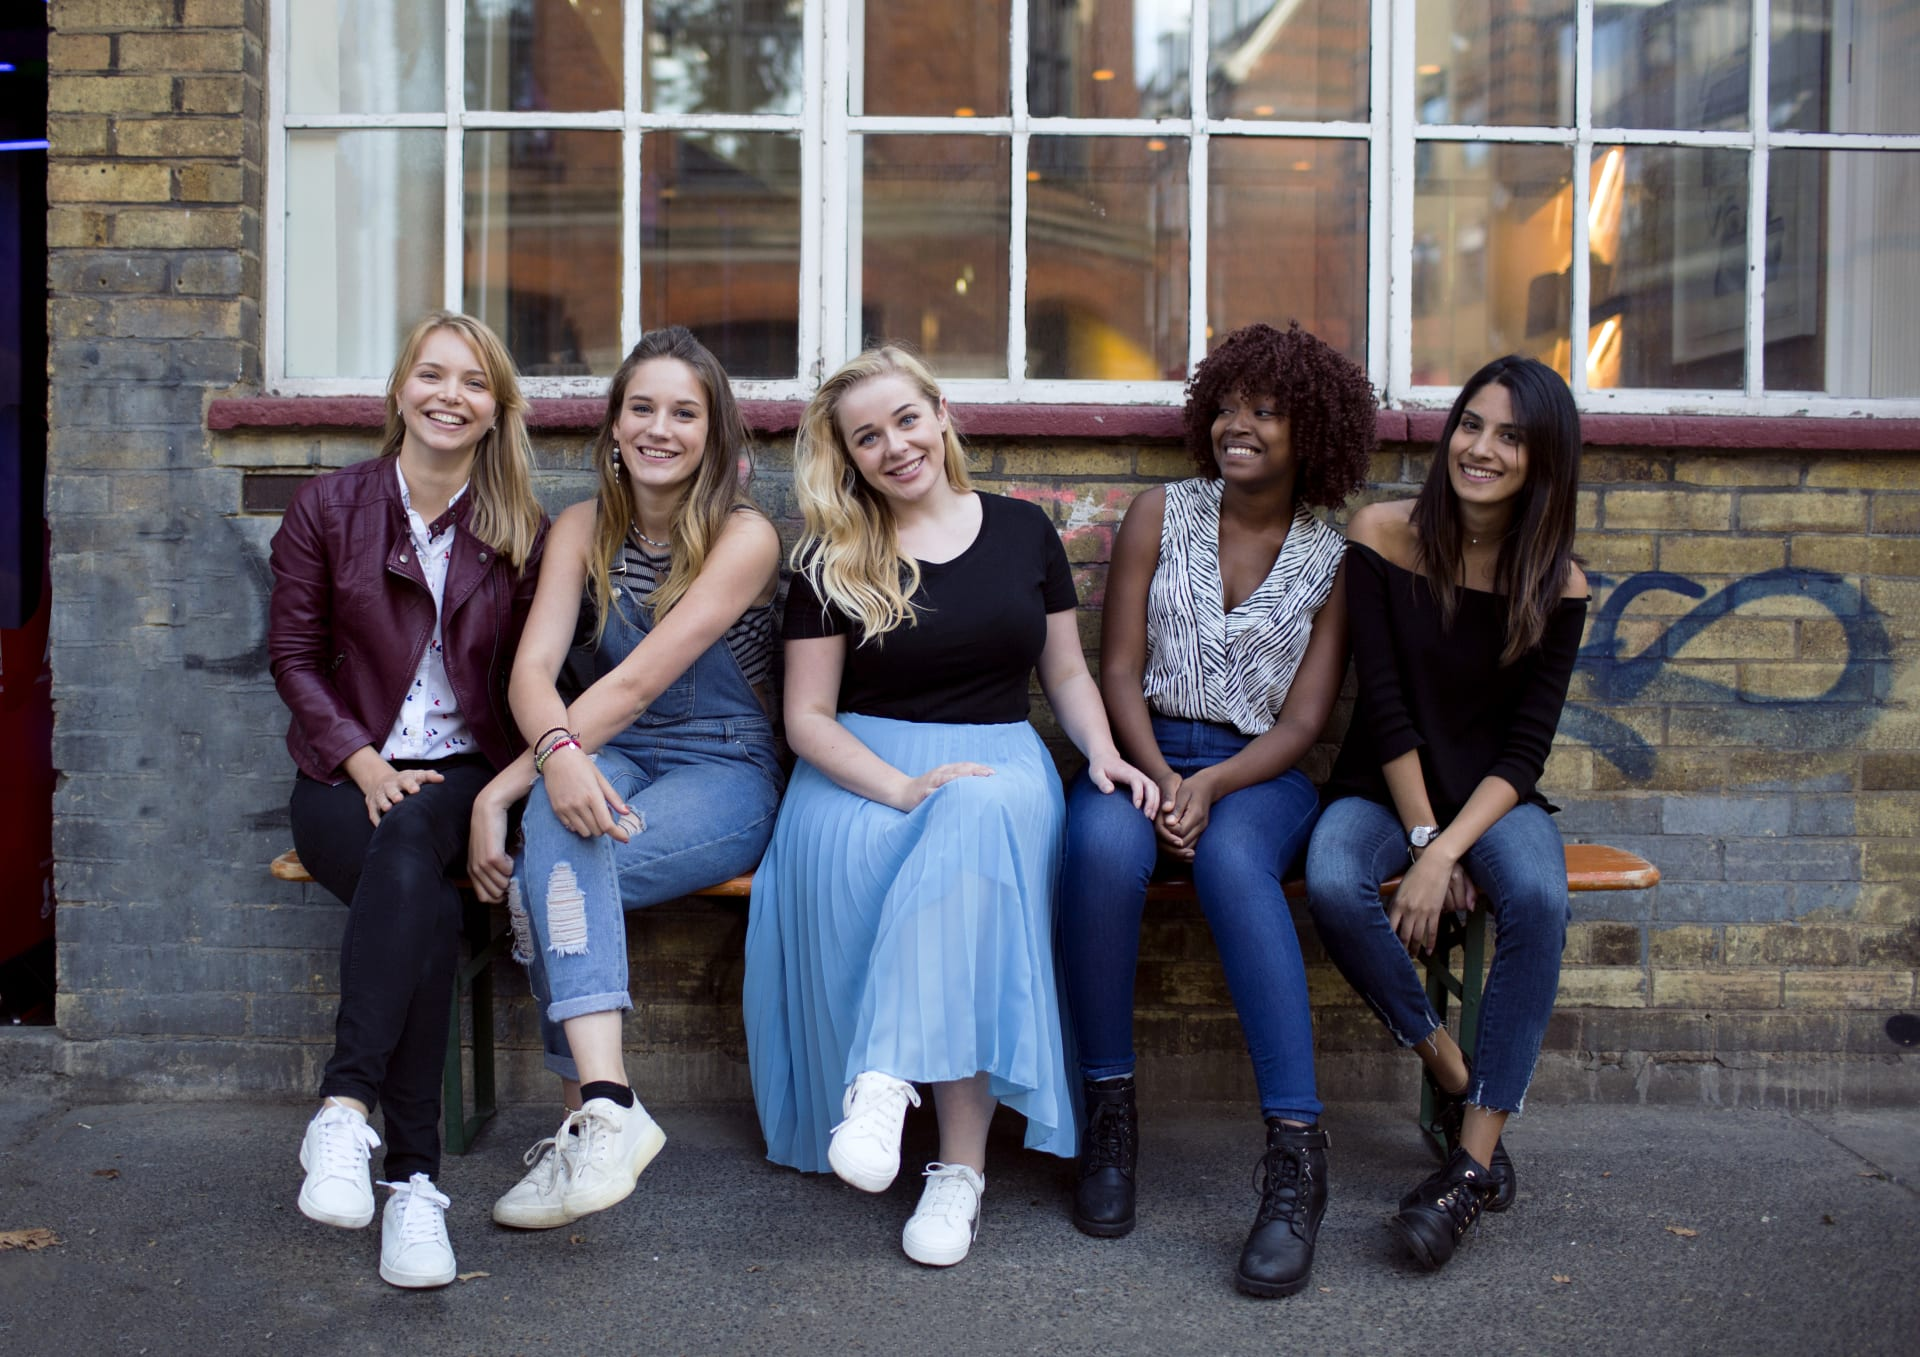 Girls sitting on a bench and smiling in front of a building